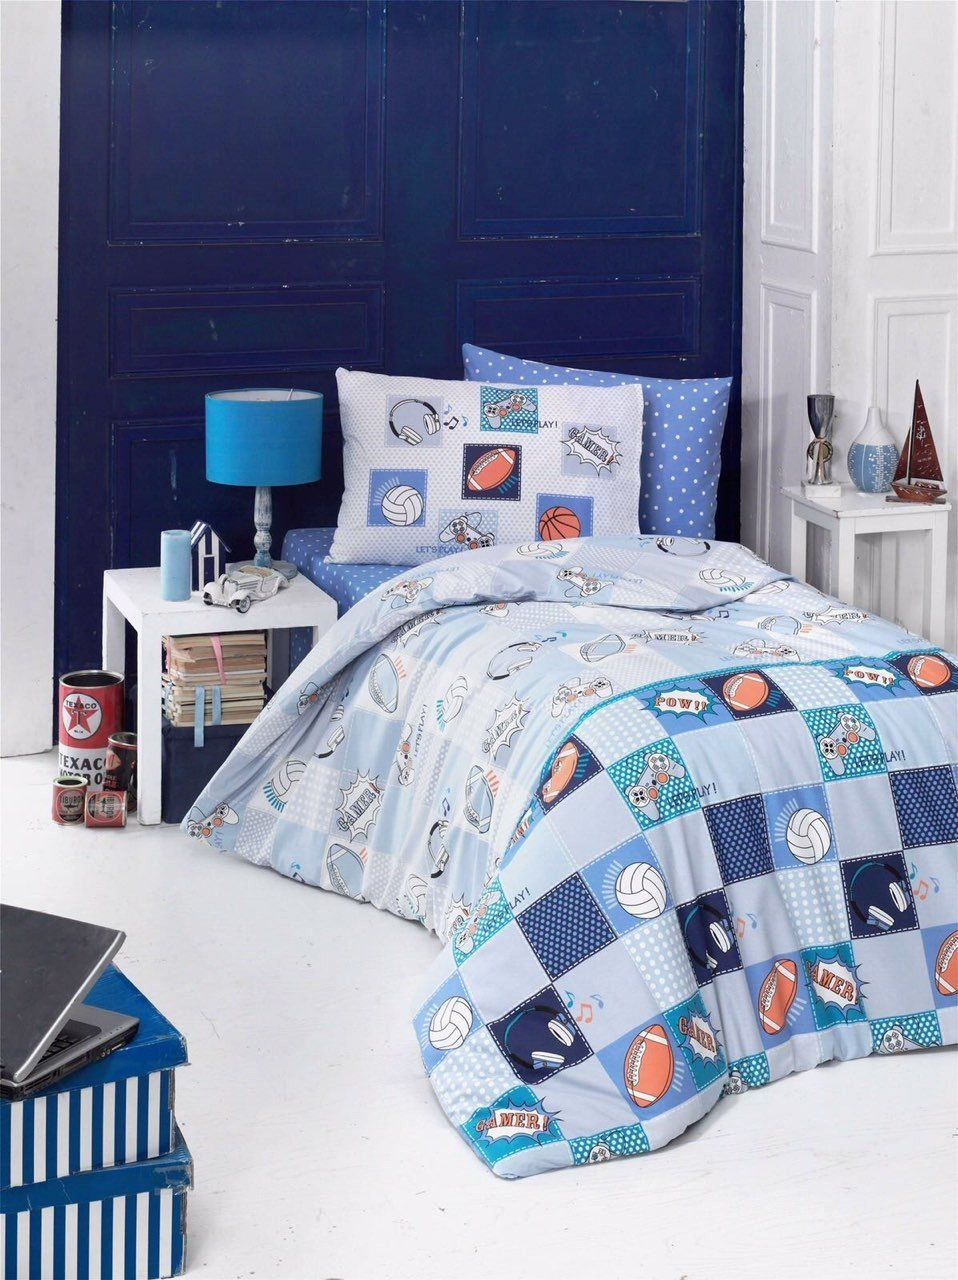 LaModaHome 3 Pcs Colored Full and Double Bedroom Bedding Ranforce 100% Cotton Ranforce Double Quilt Duvet Cover Set Blue Background Gamepad Ball Square Patternn Gamer